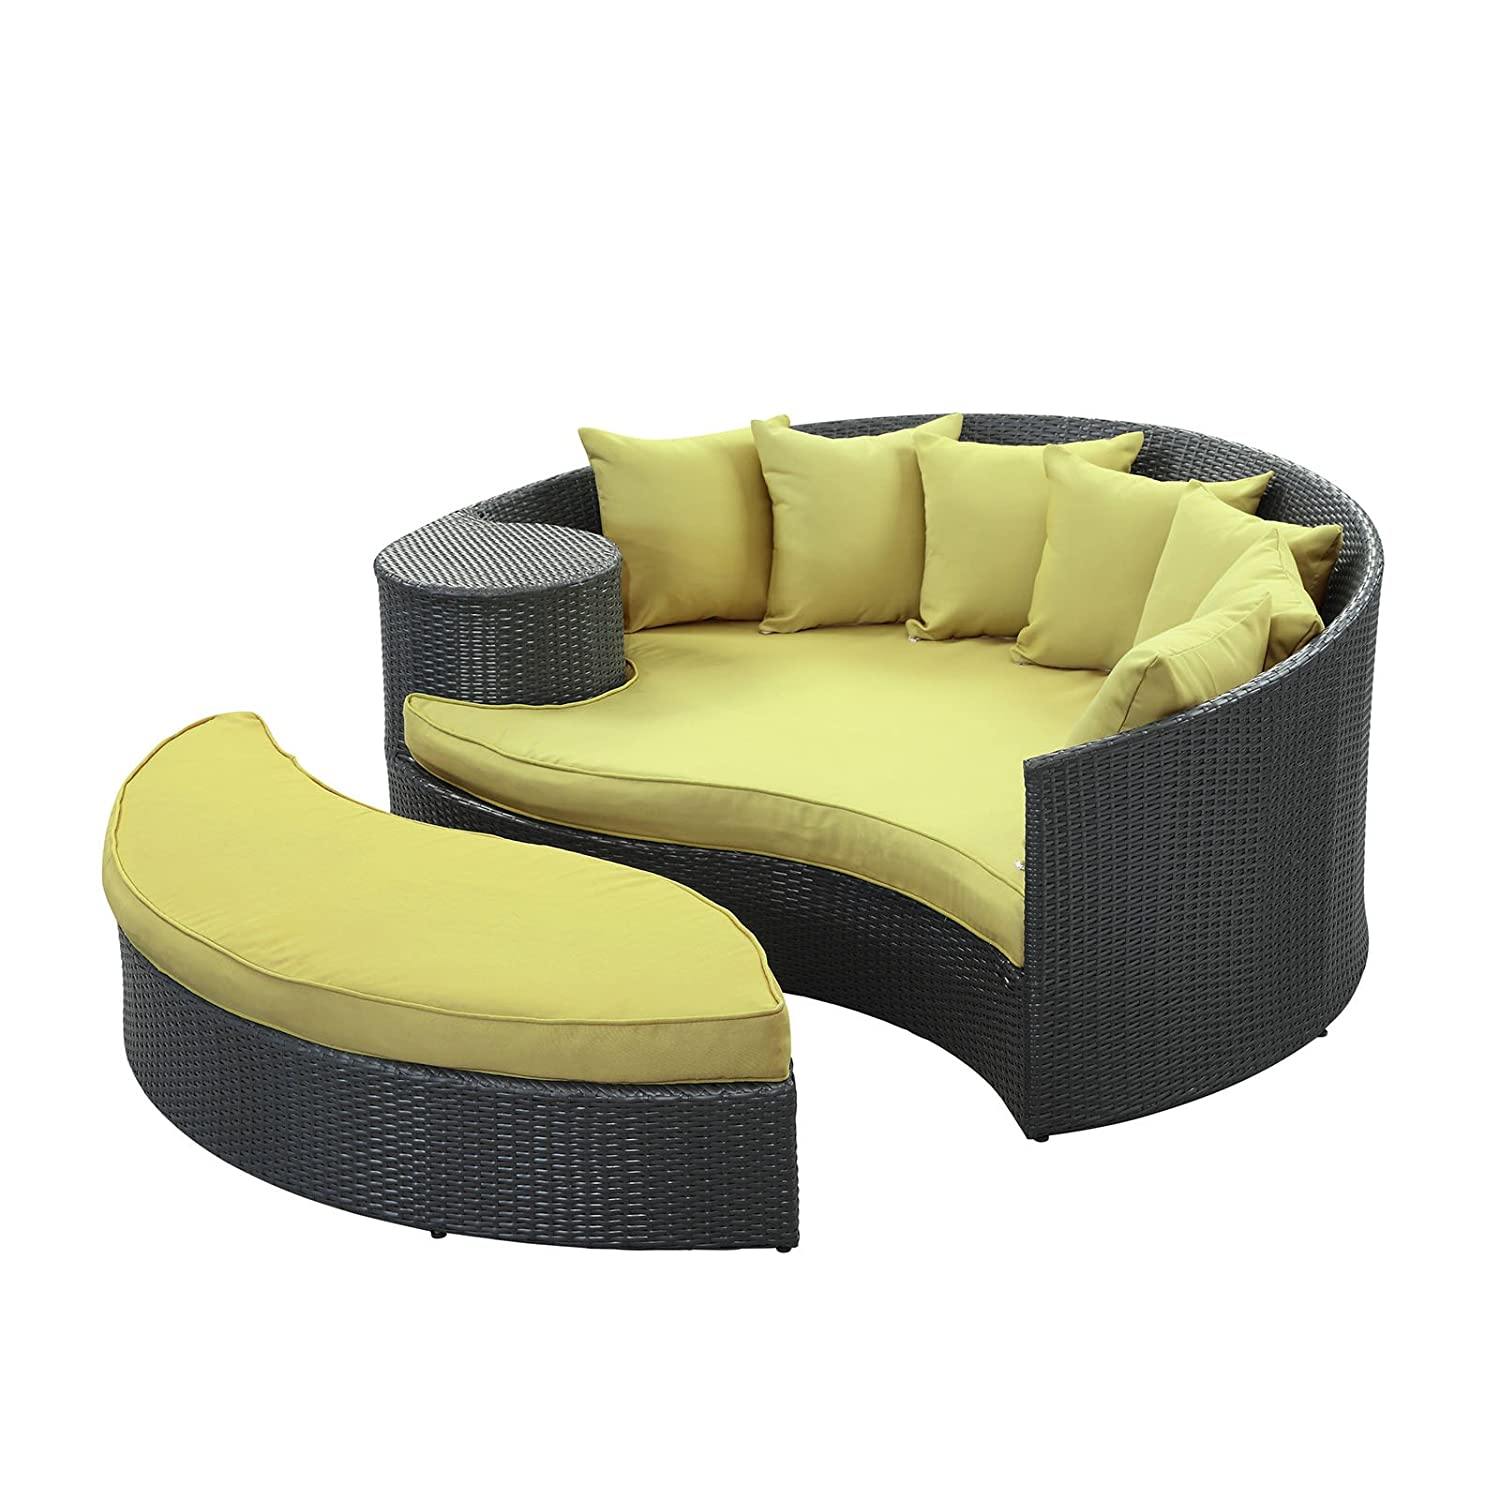 Amazon.com : Modway Taiji Outdoor Wicker Patio Daybed with Ottoman in  Espresso with Peridot Cushions : Patio Lounge Chairs : Garden & Outdoor